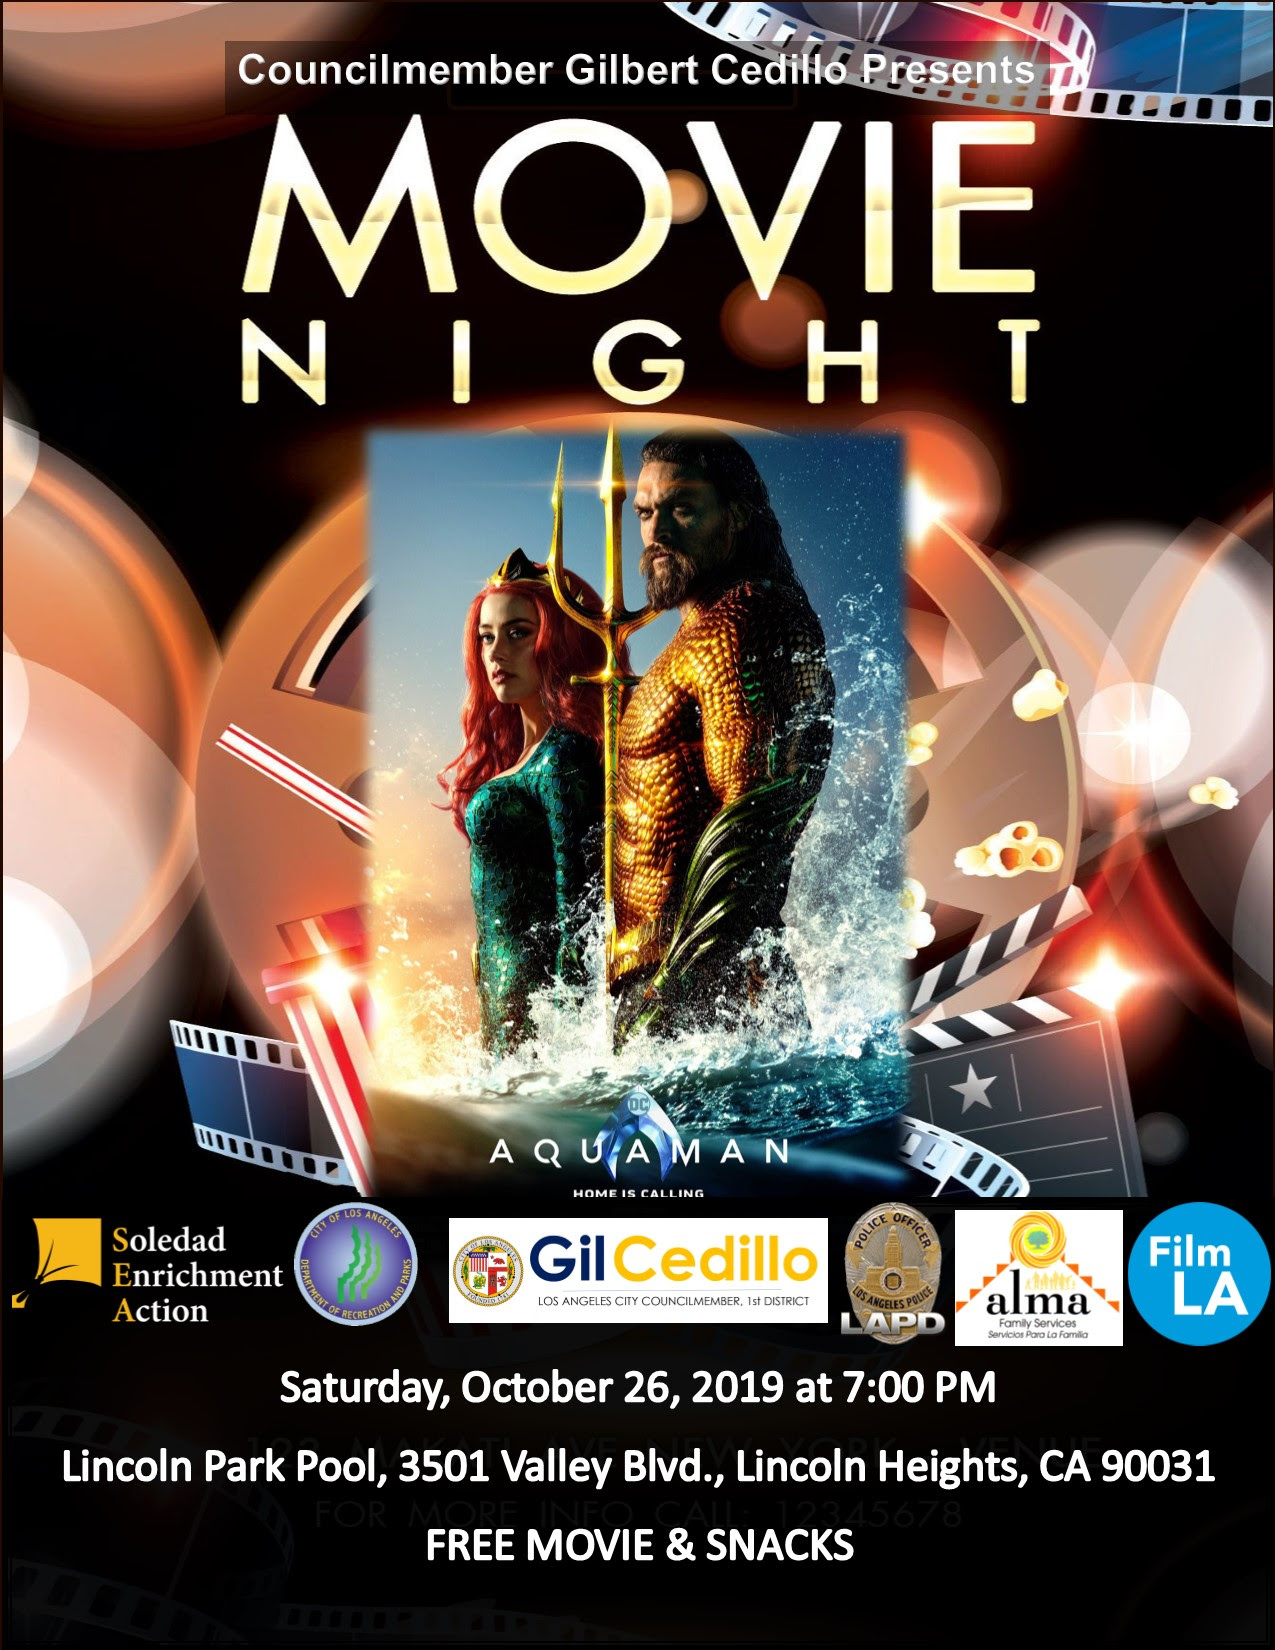 AquaMan Movie Night 10-26-19